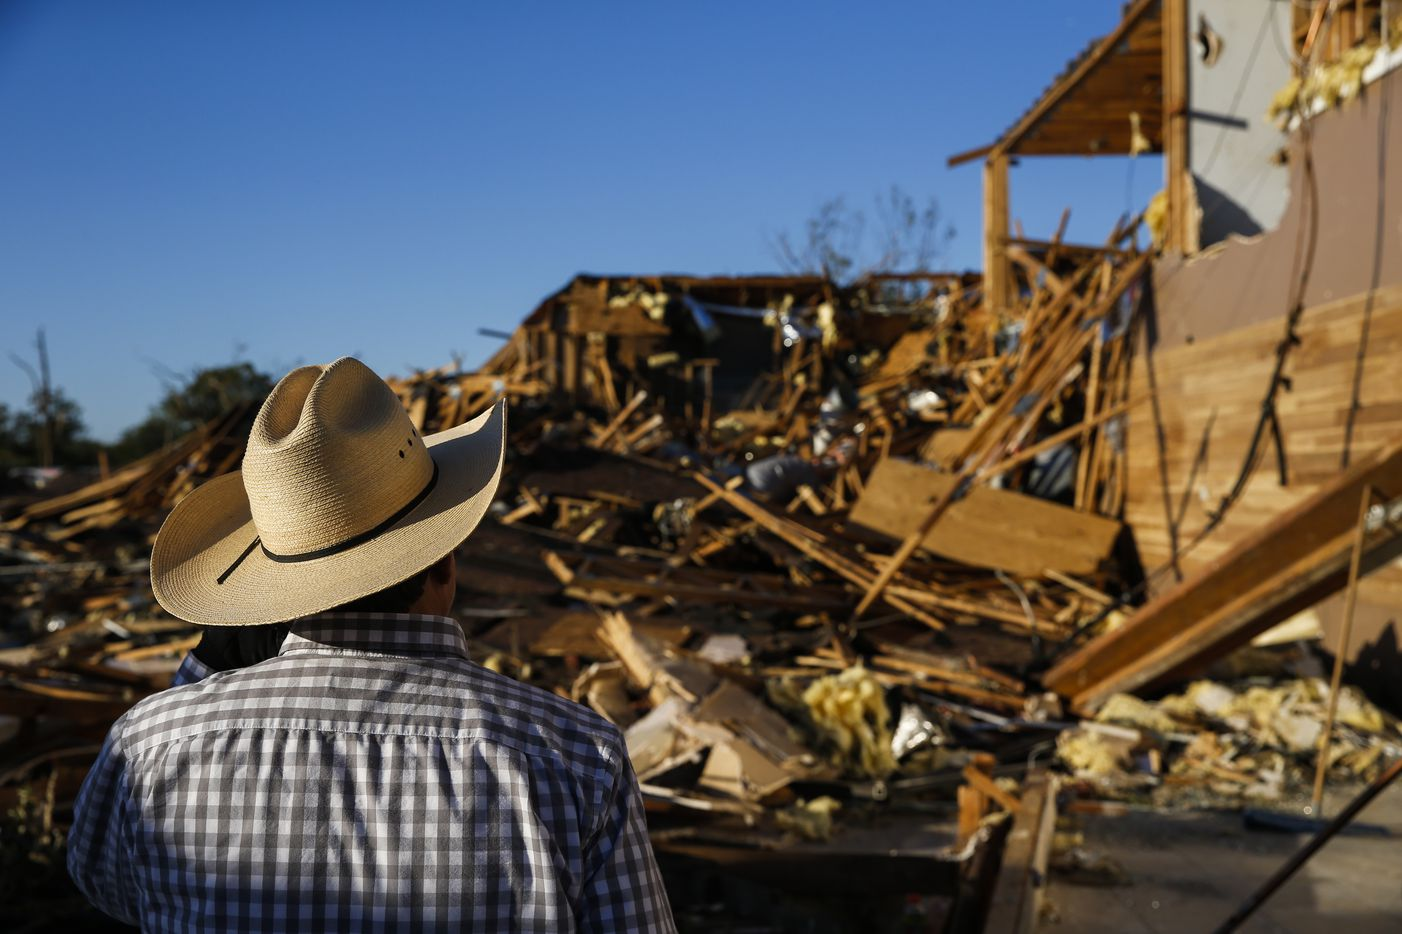 Hector Rodriguez, who has served as  deacon of Primera Iglesia Bautista Mexicana since 1987, surveys damage at the church just off of Walnut Hill Lane in Dallas, on Sunday, Oct. 21, 2019 after a tornado hit the night before.